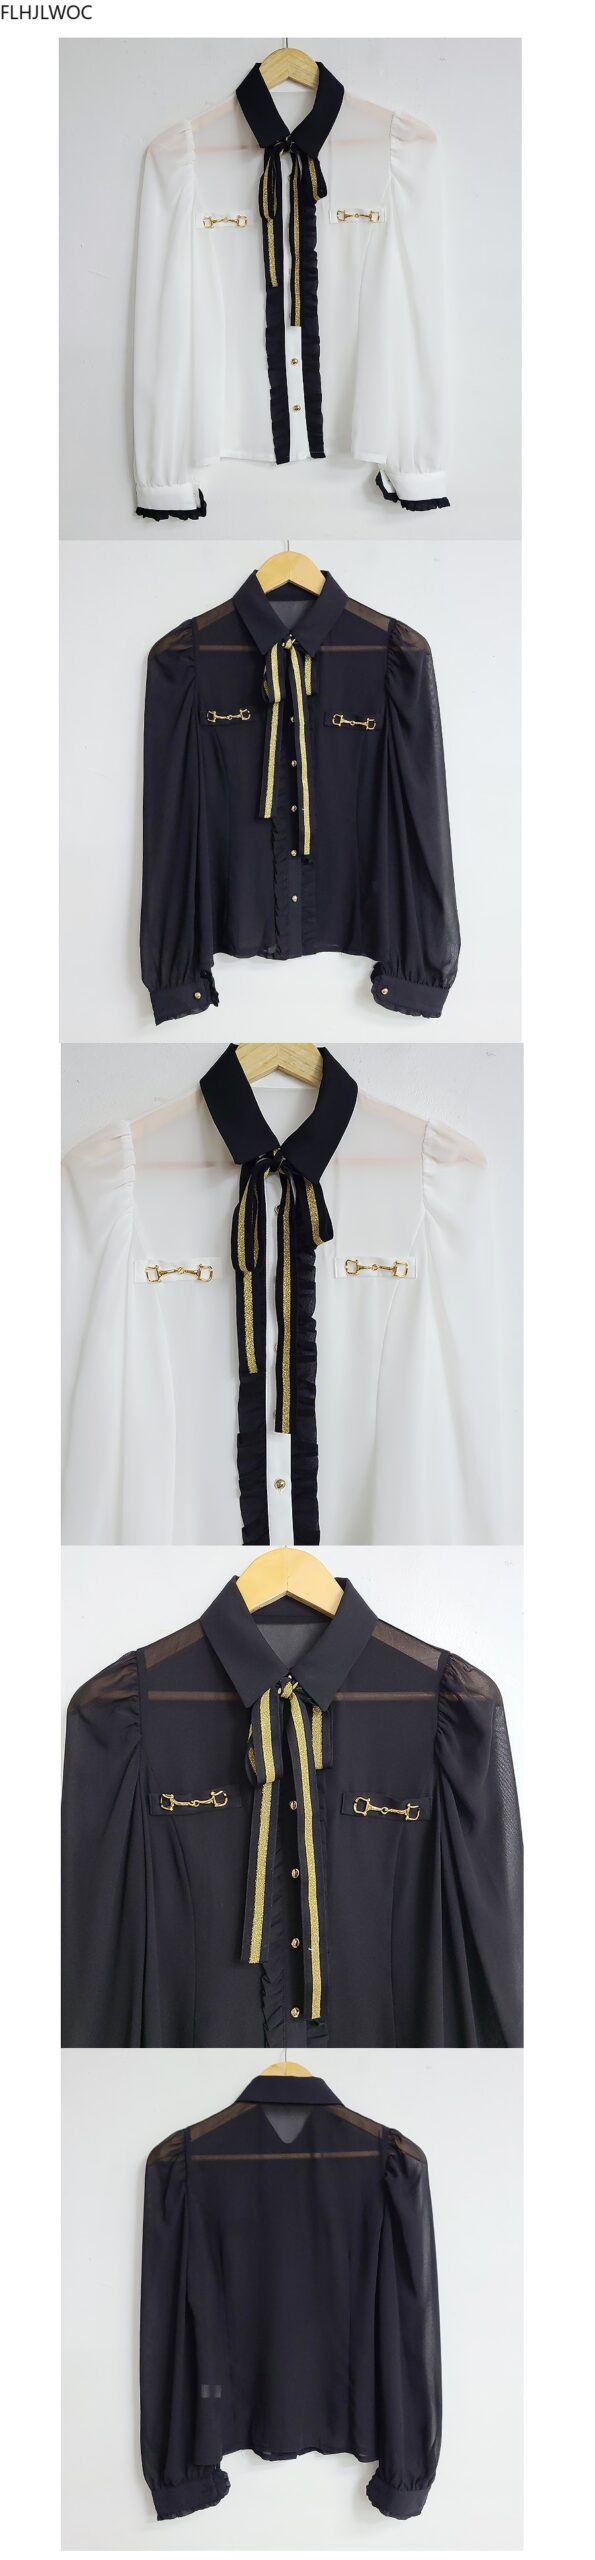 Autumn Womens Basic Office Lady Work Wear Sexy Transaprent Cute Bow Tie Top Single Breasted Button Solid White Shirts Blouses